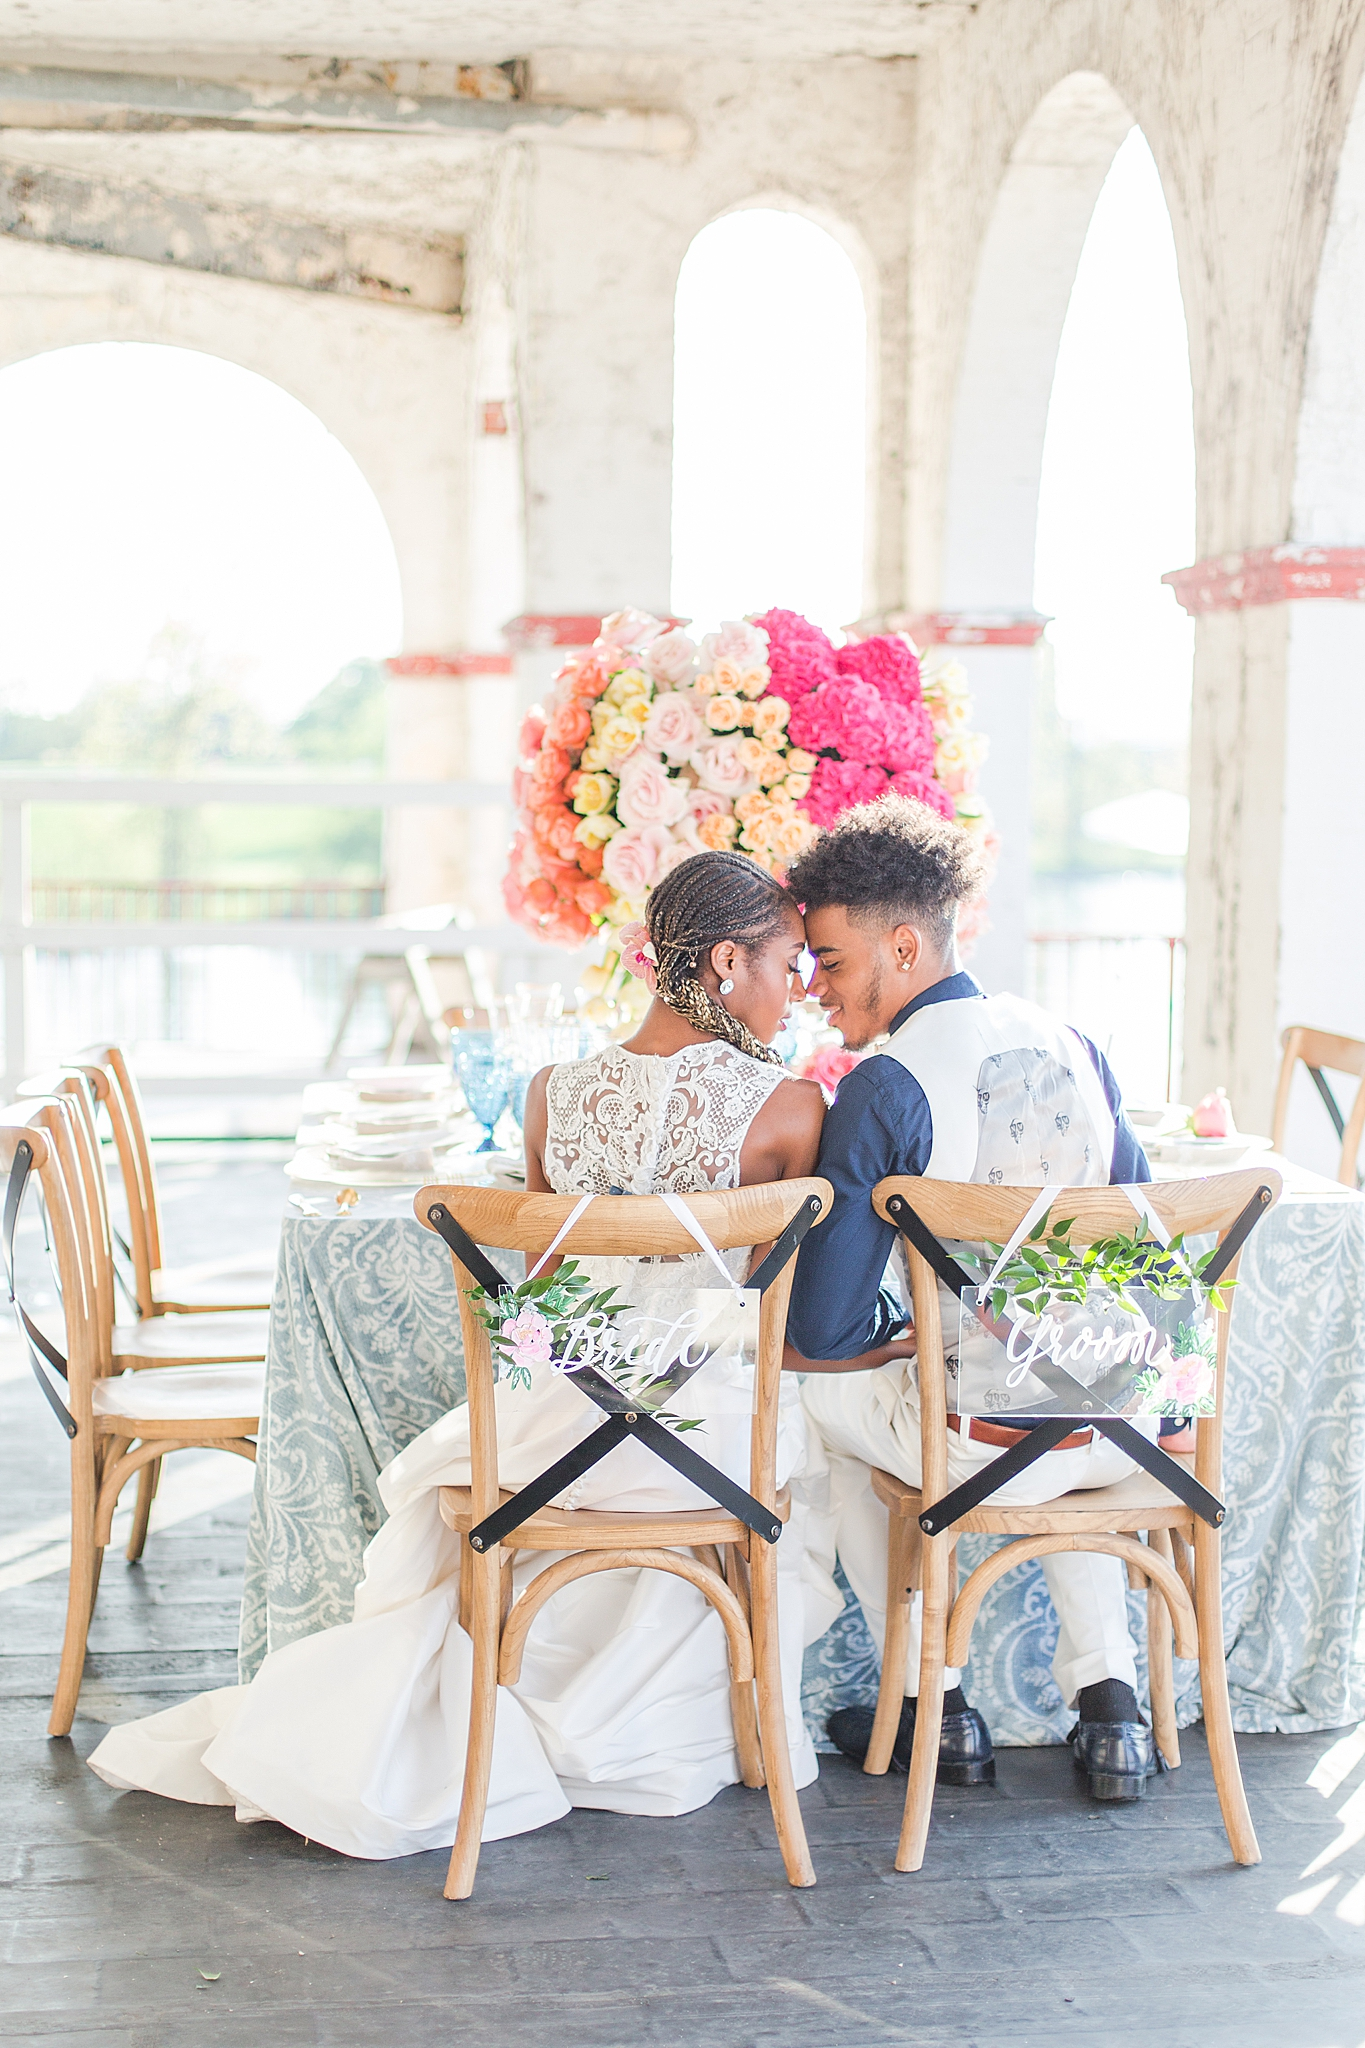 intimate-elopement-wedding-photography-at-belle-isle-boat-house-detroit-michigan-by-courtney-carolyn-photography_0047.jpg